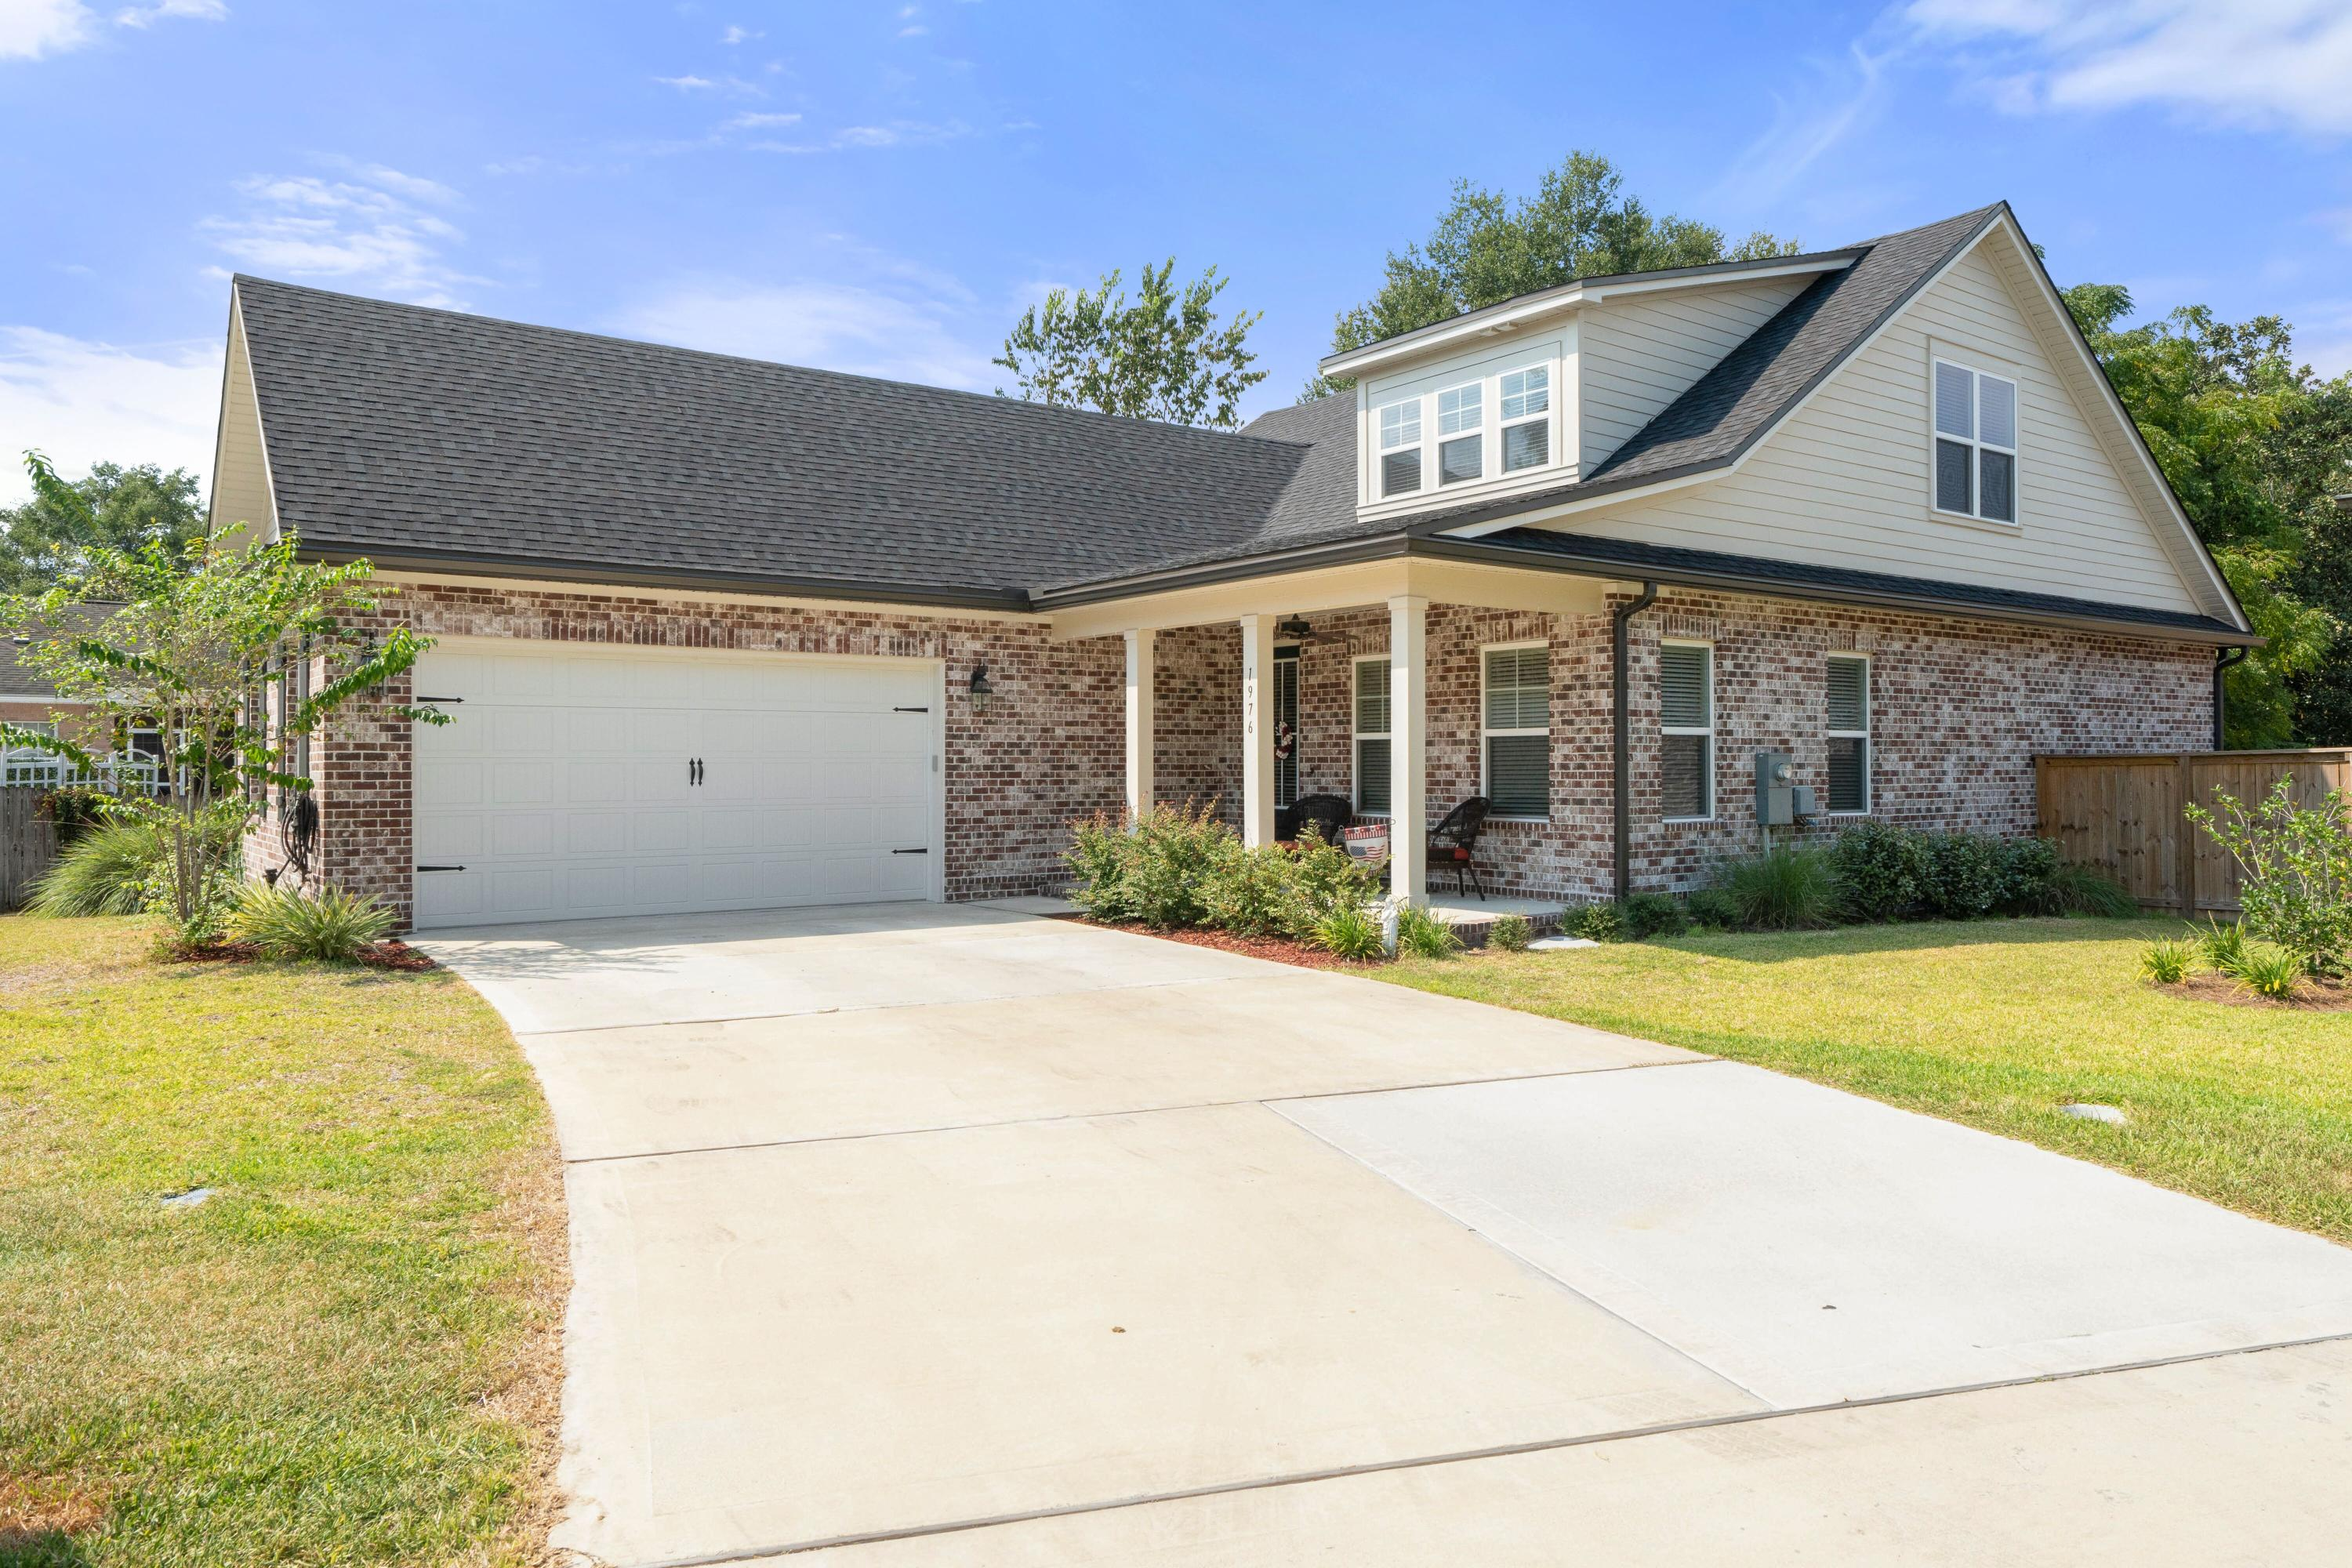 Photo of home for sale at 1976 Hattie Mae, Niceville FL